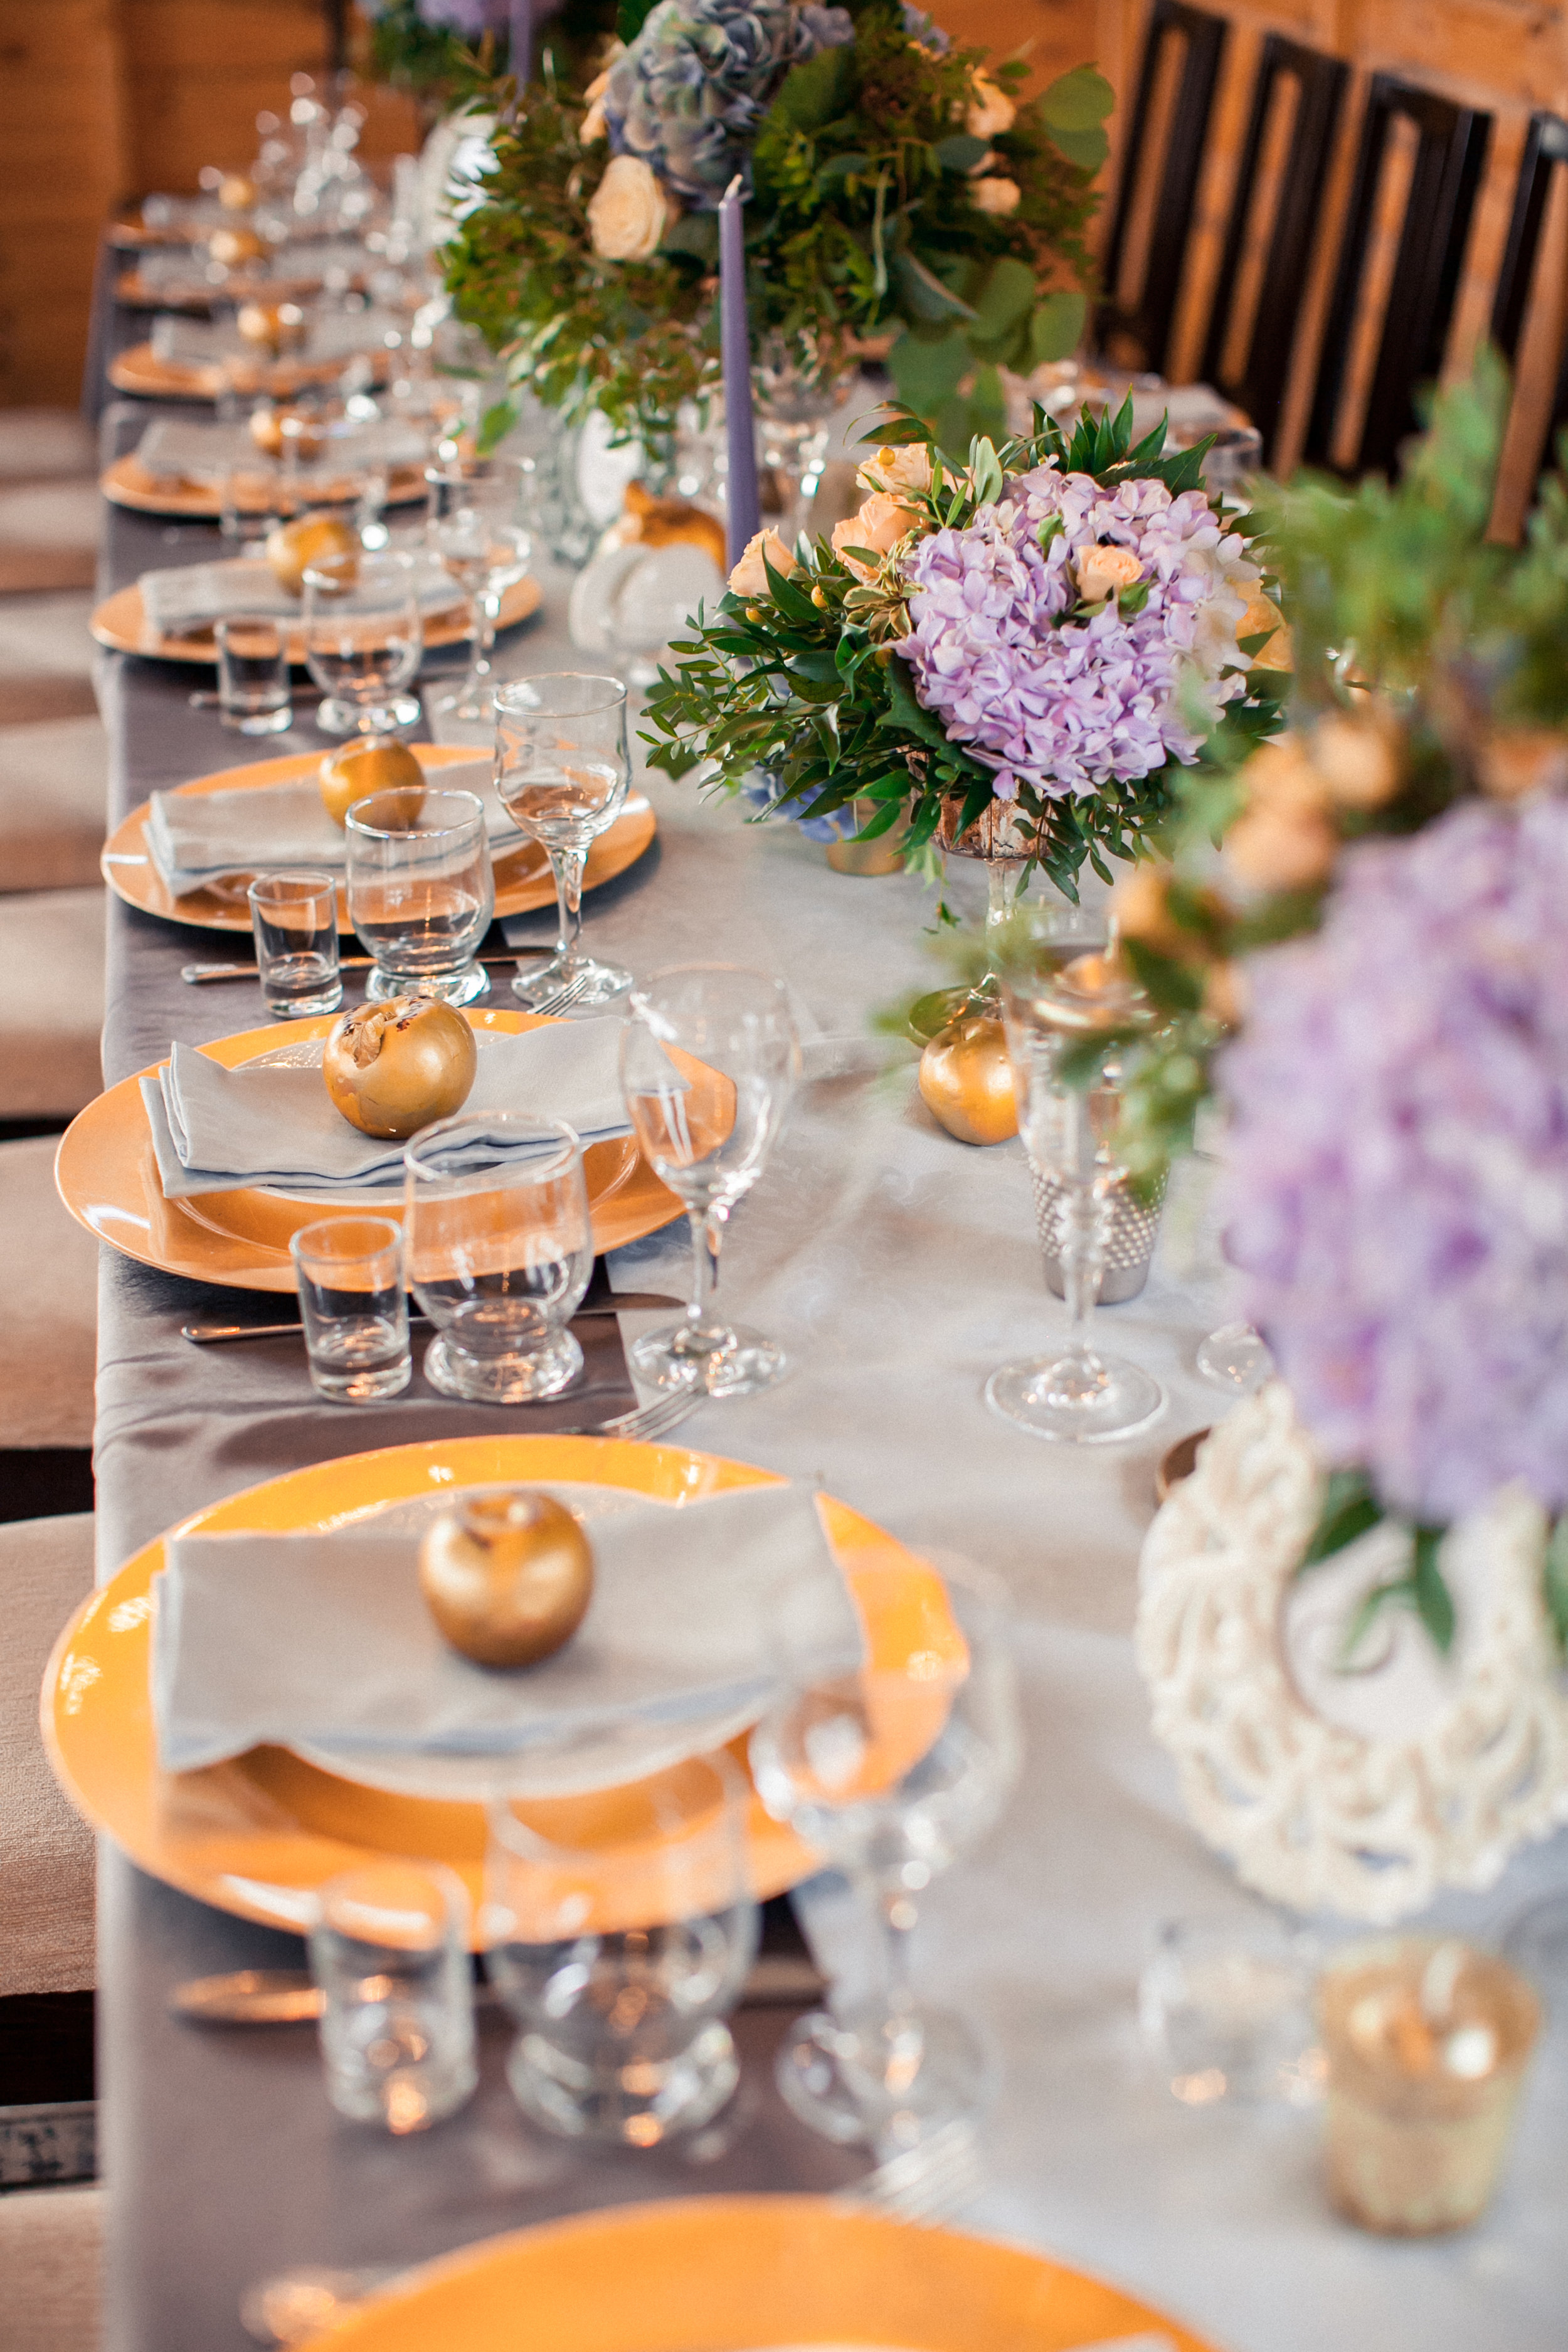 Phoebe Lo Events - Toronto Event Planner and Floral Designer 009.jpg